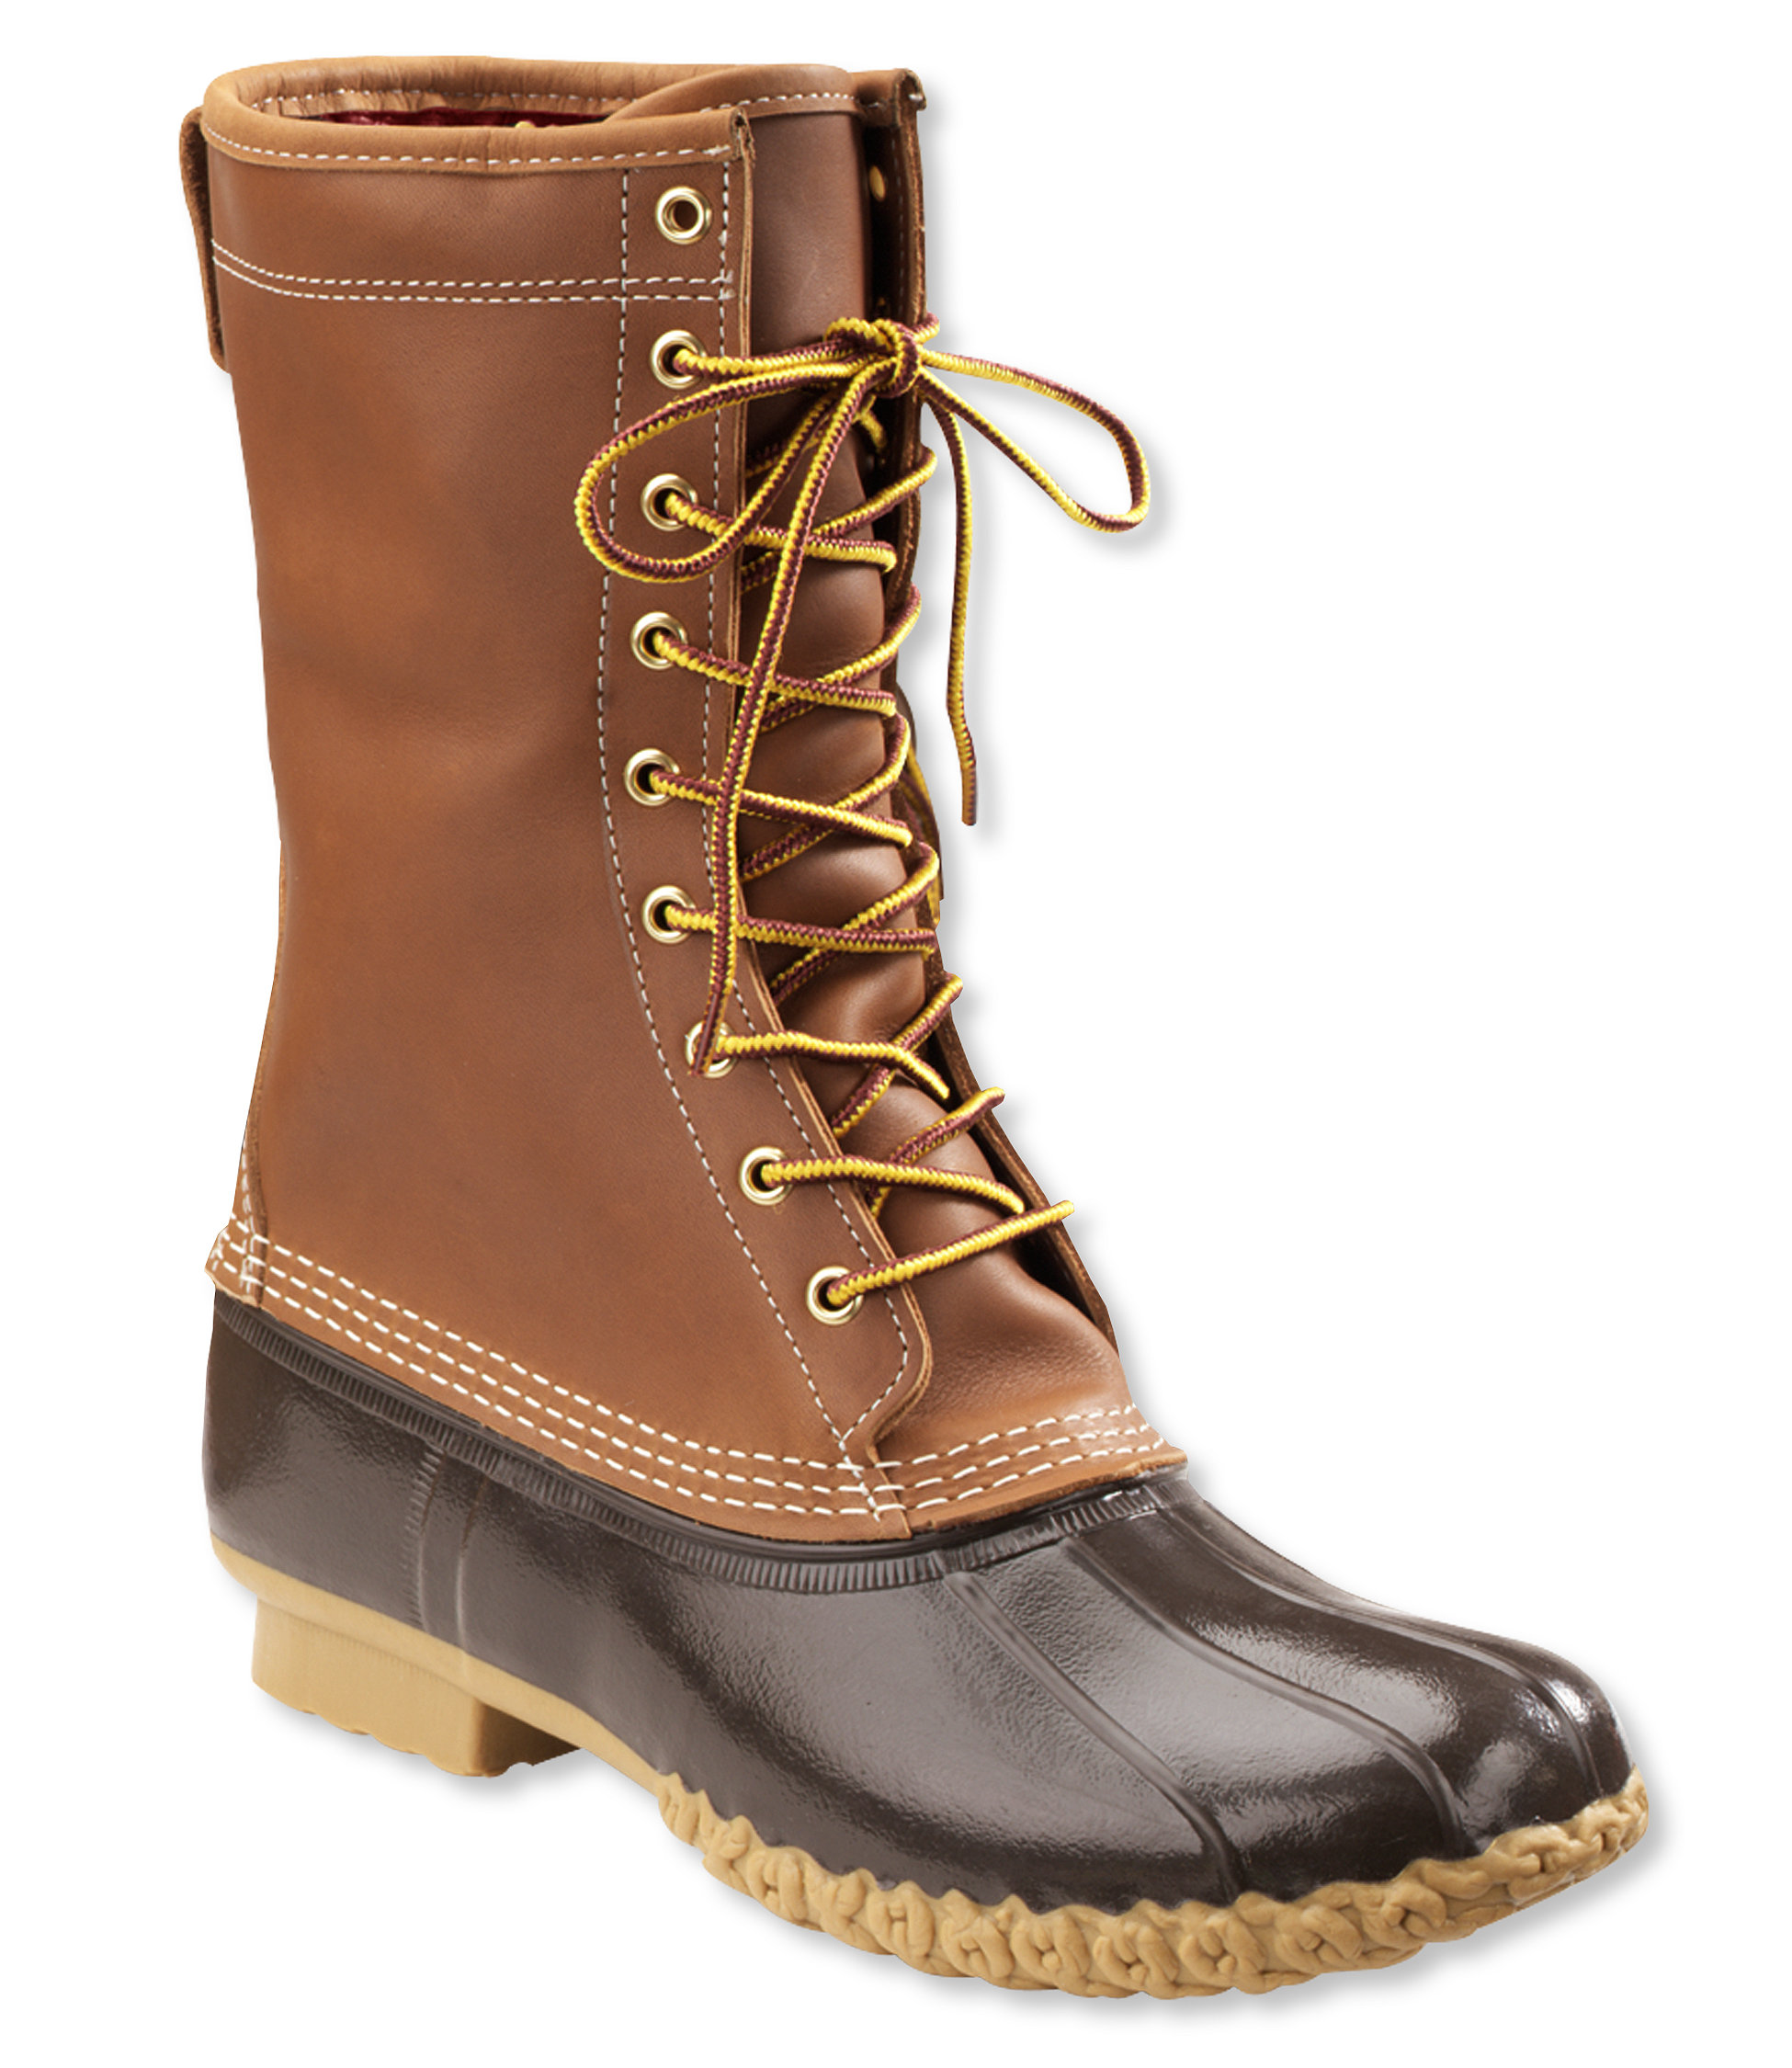 L.L.Bean Bean Boots, Gore-Tex/Thinsulate